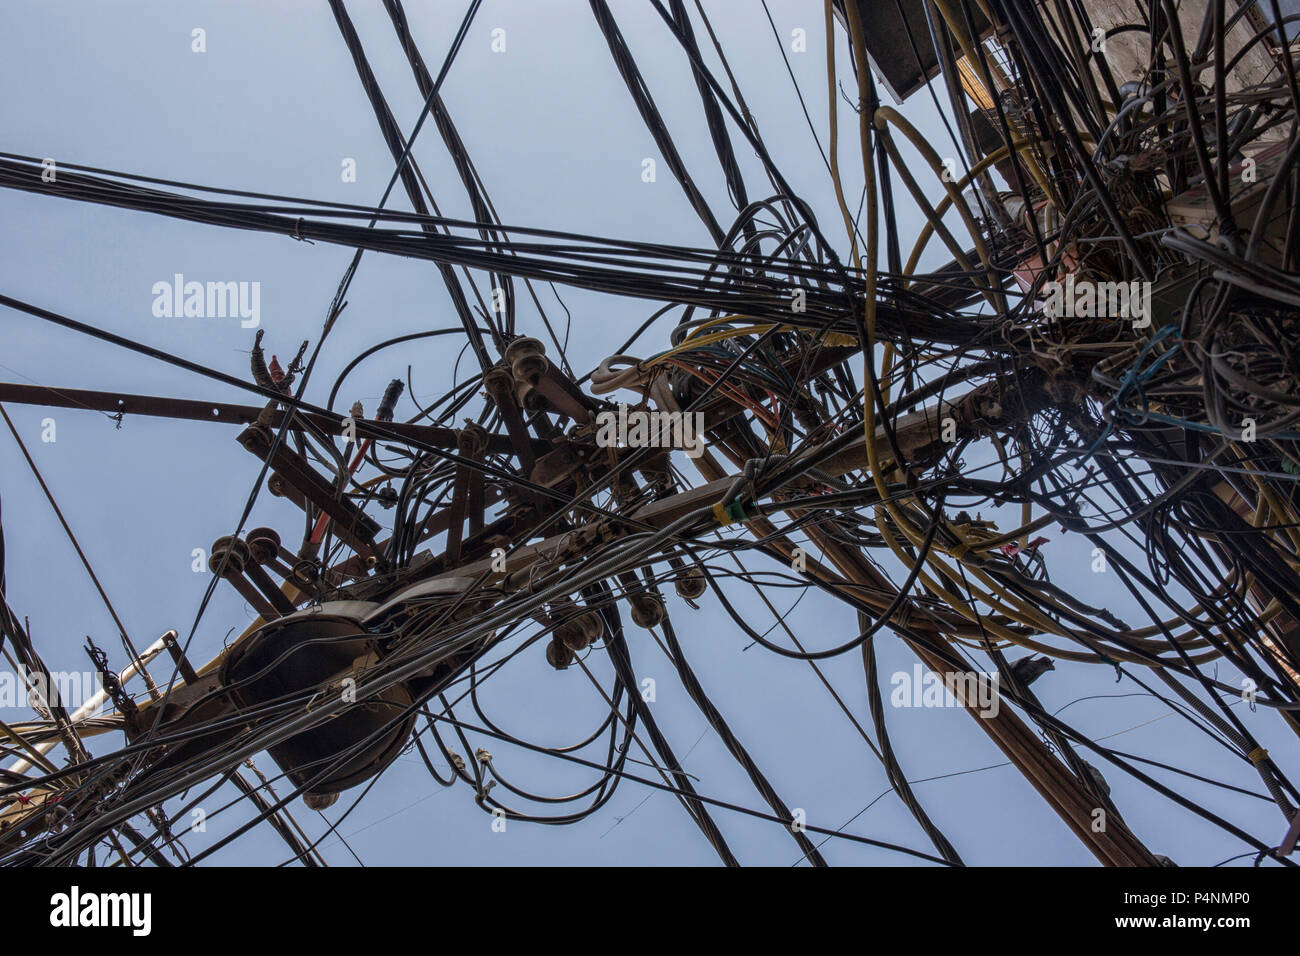 Wires attached to the electric pole, the chaos of cables and wires on an electric pole in New dehli, India, concept of electricity - Stock Image